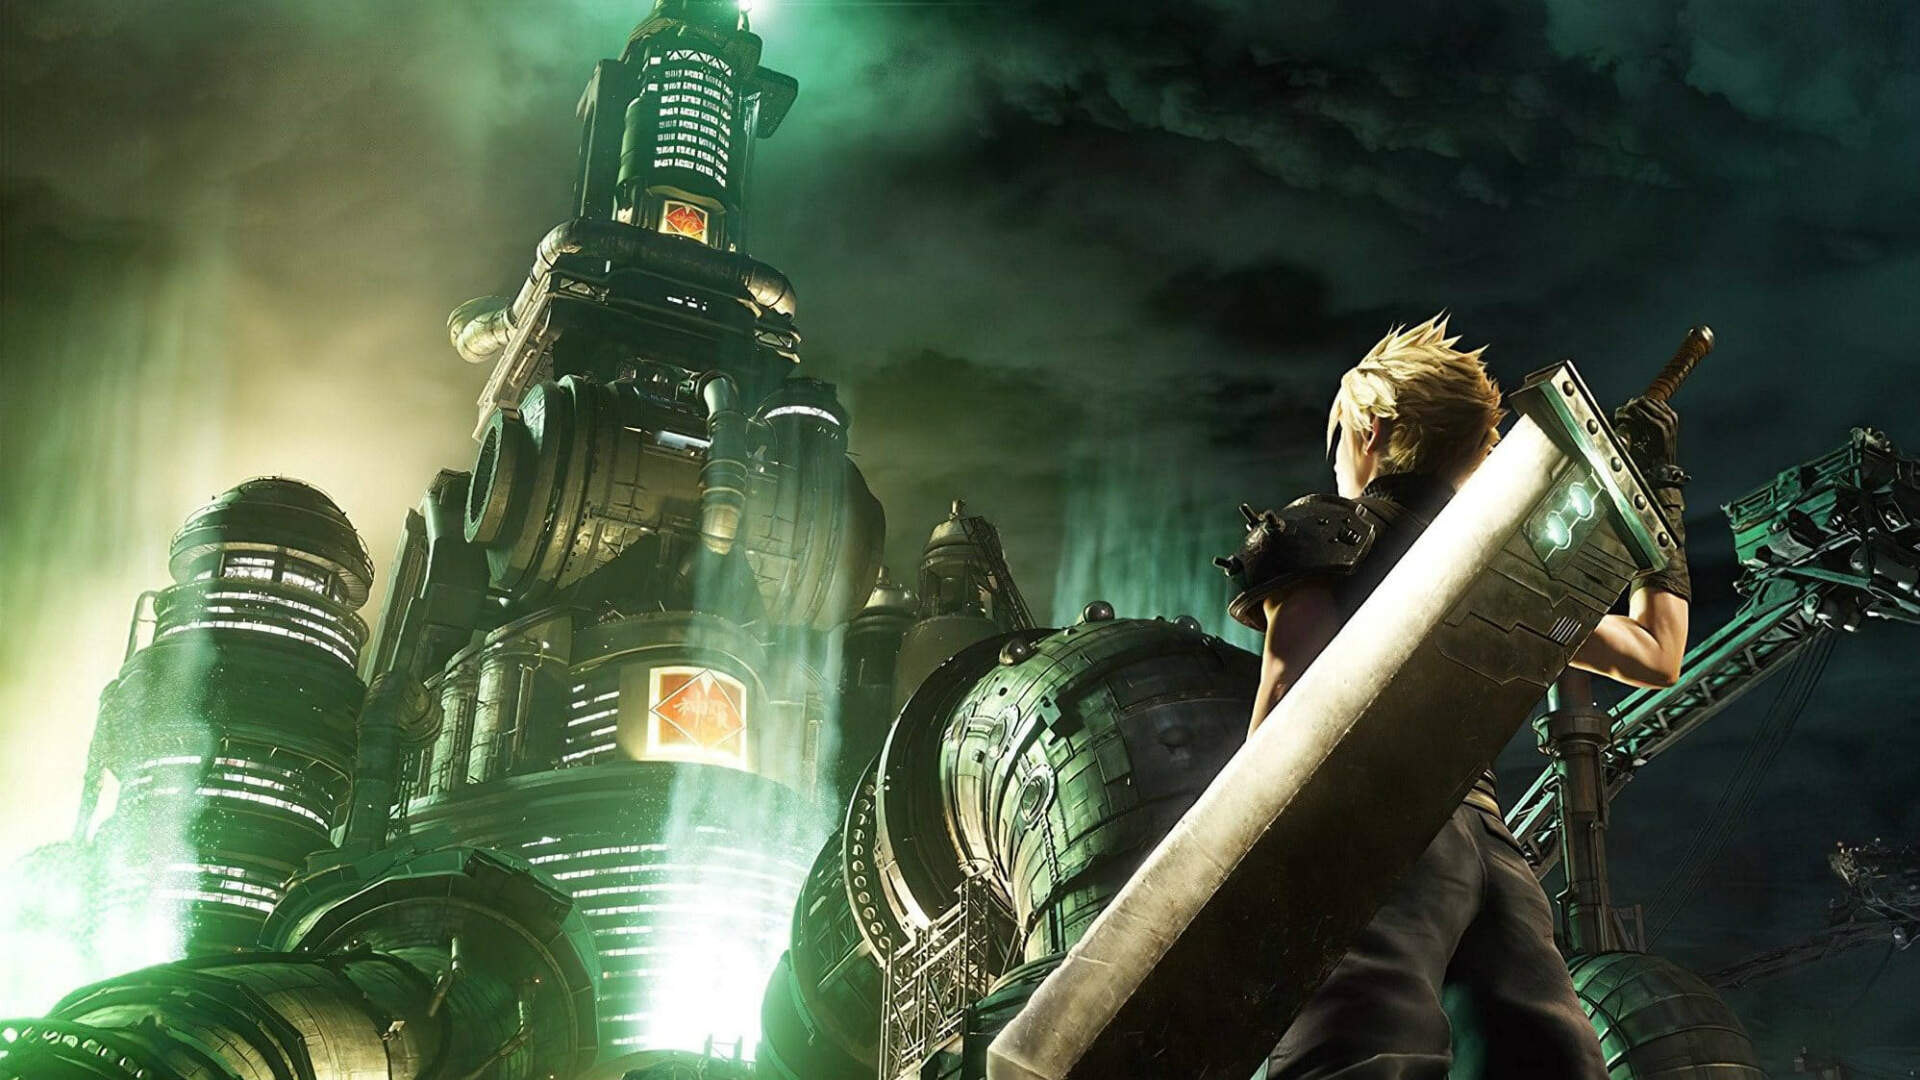 This 7-Minute Final Fantasy 7 Remake Commercial Will Warm Your Cynical Heart